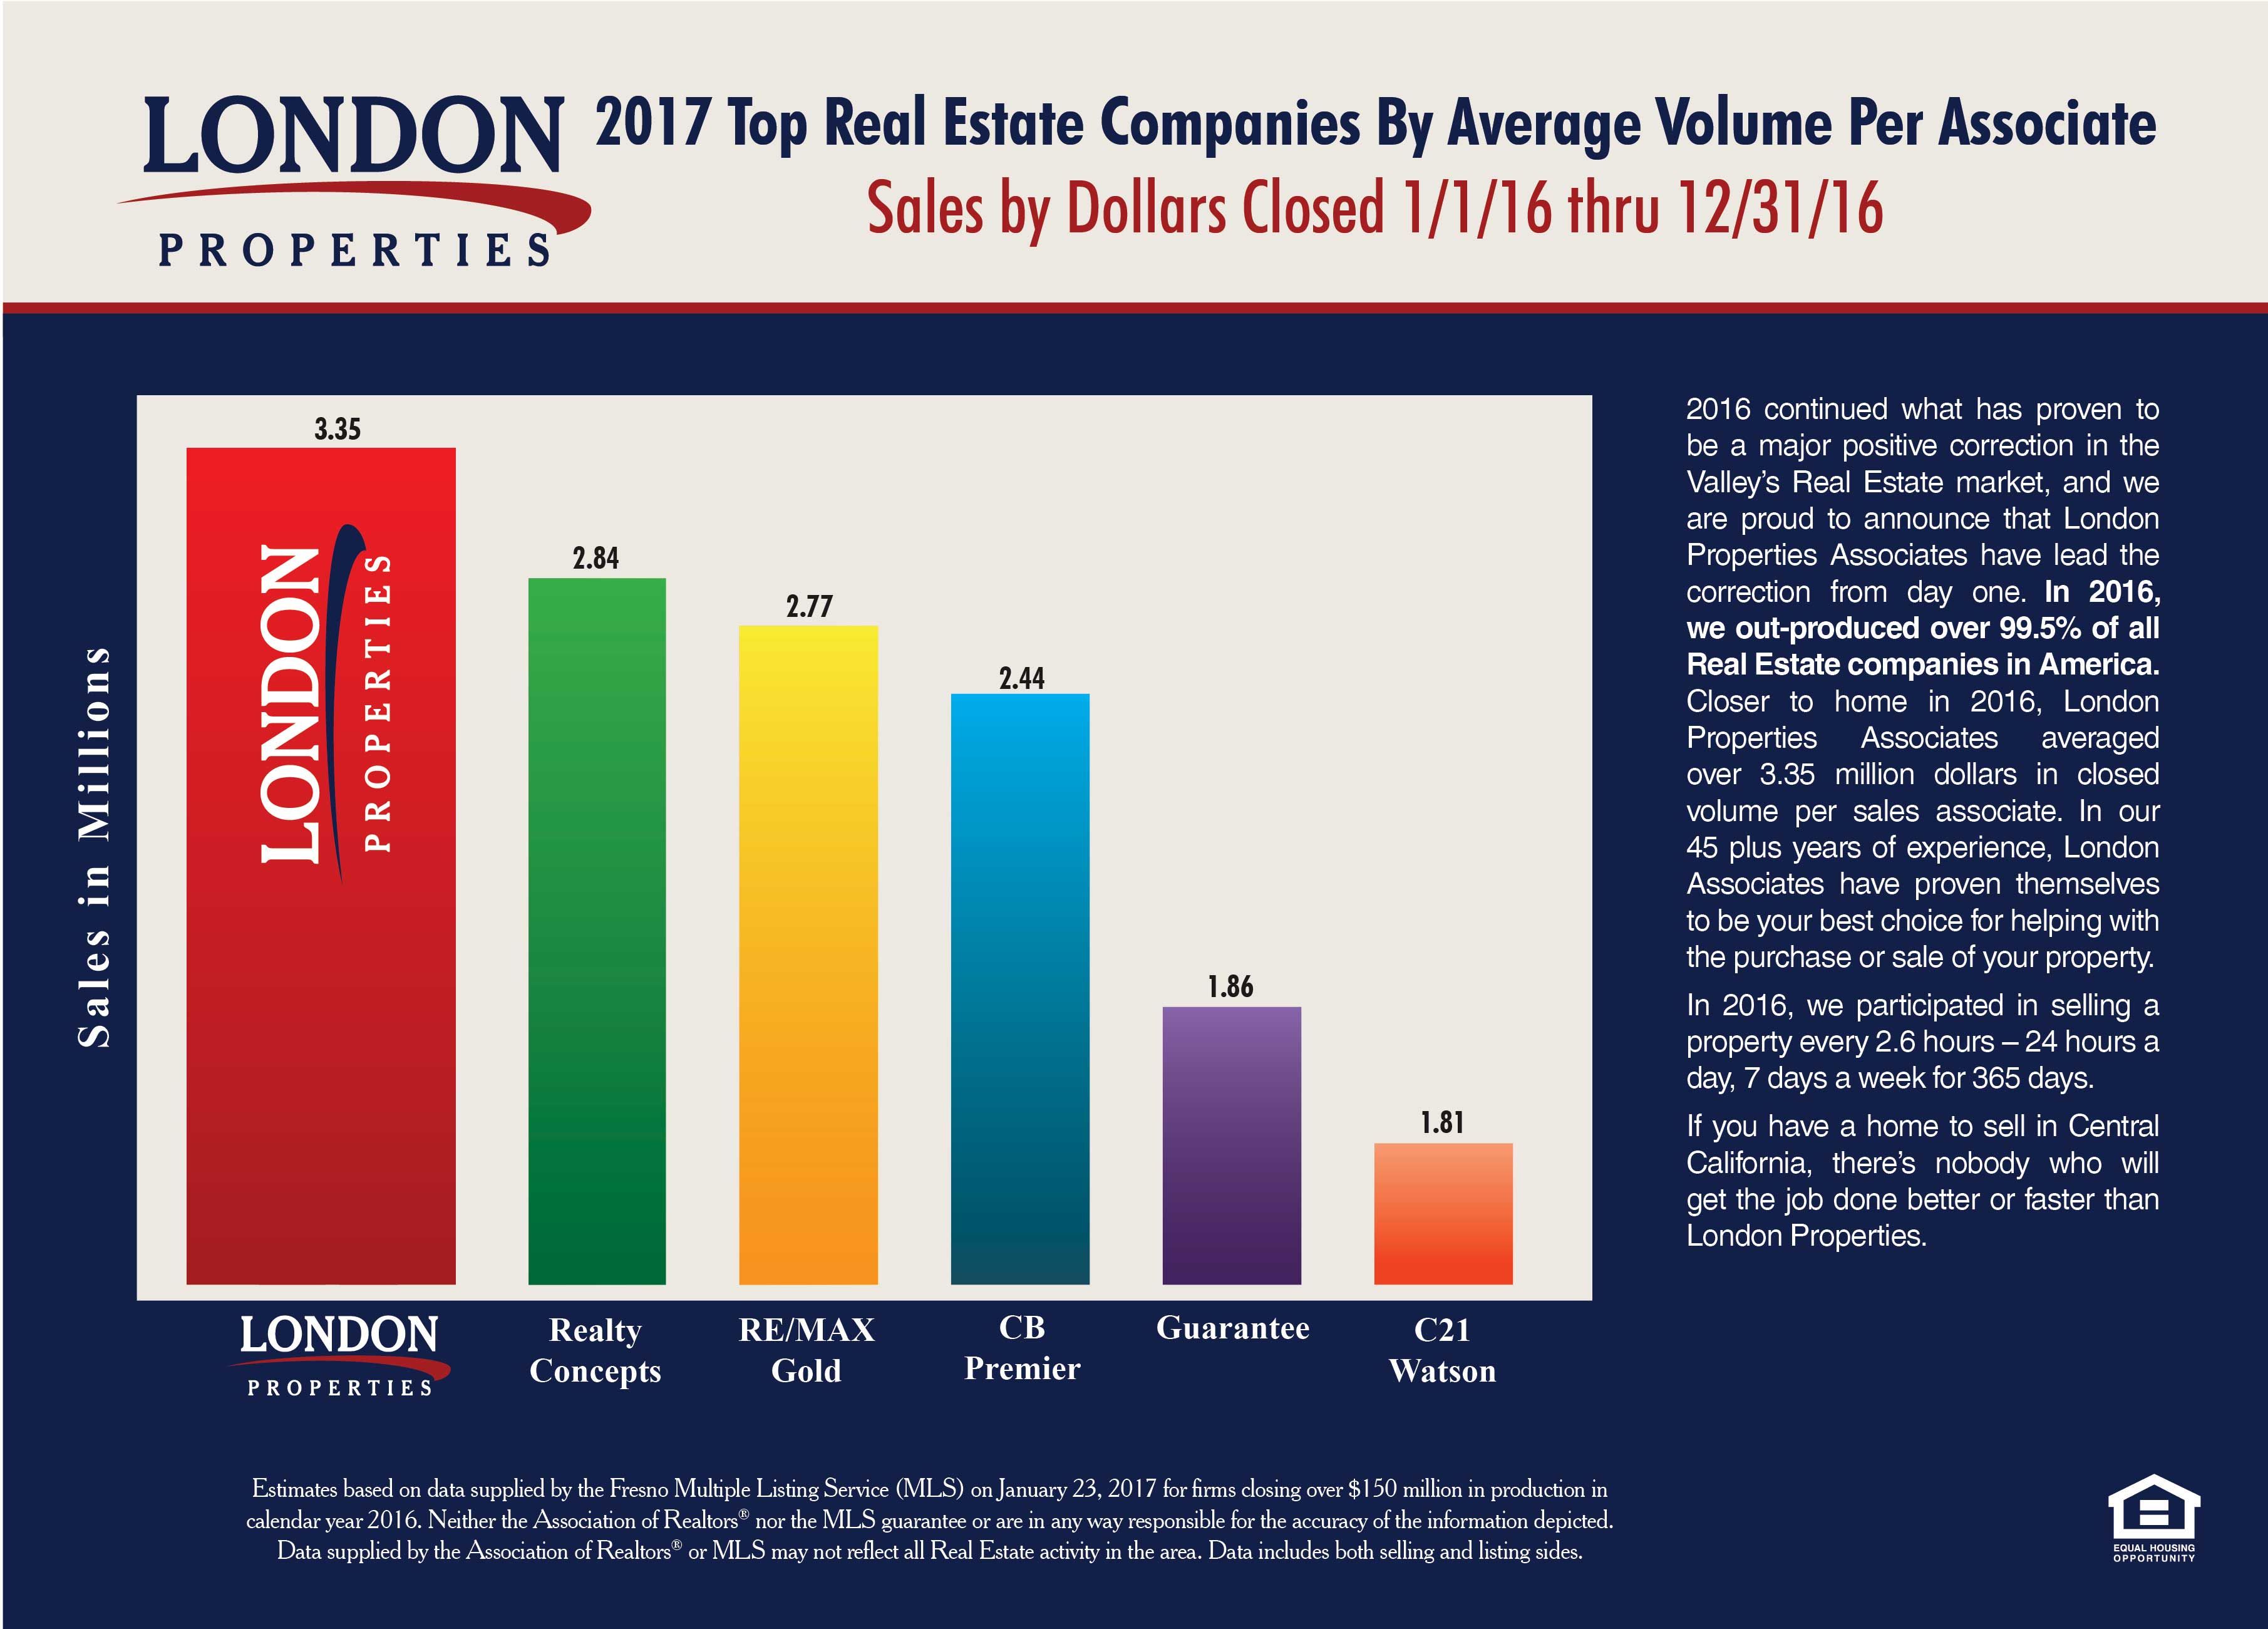 2017 Top Real Estate Companies By Average Volume Per Associate